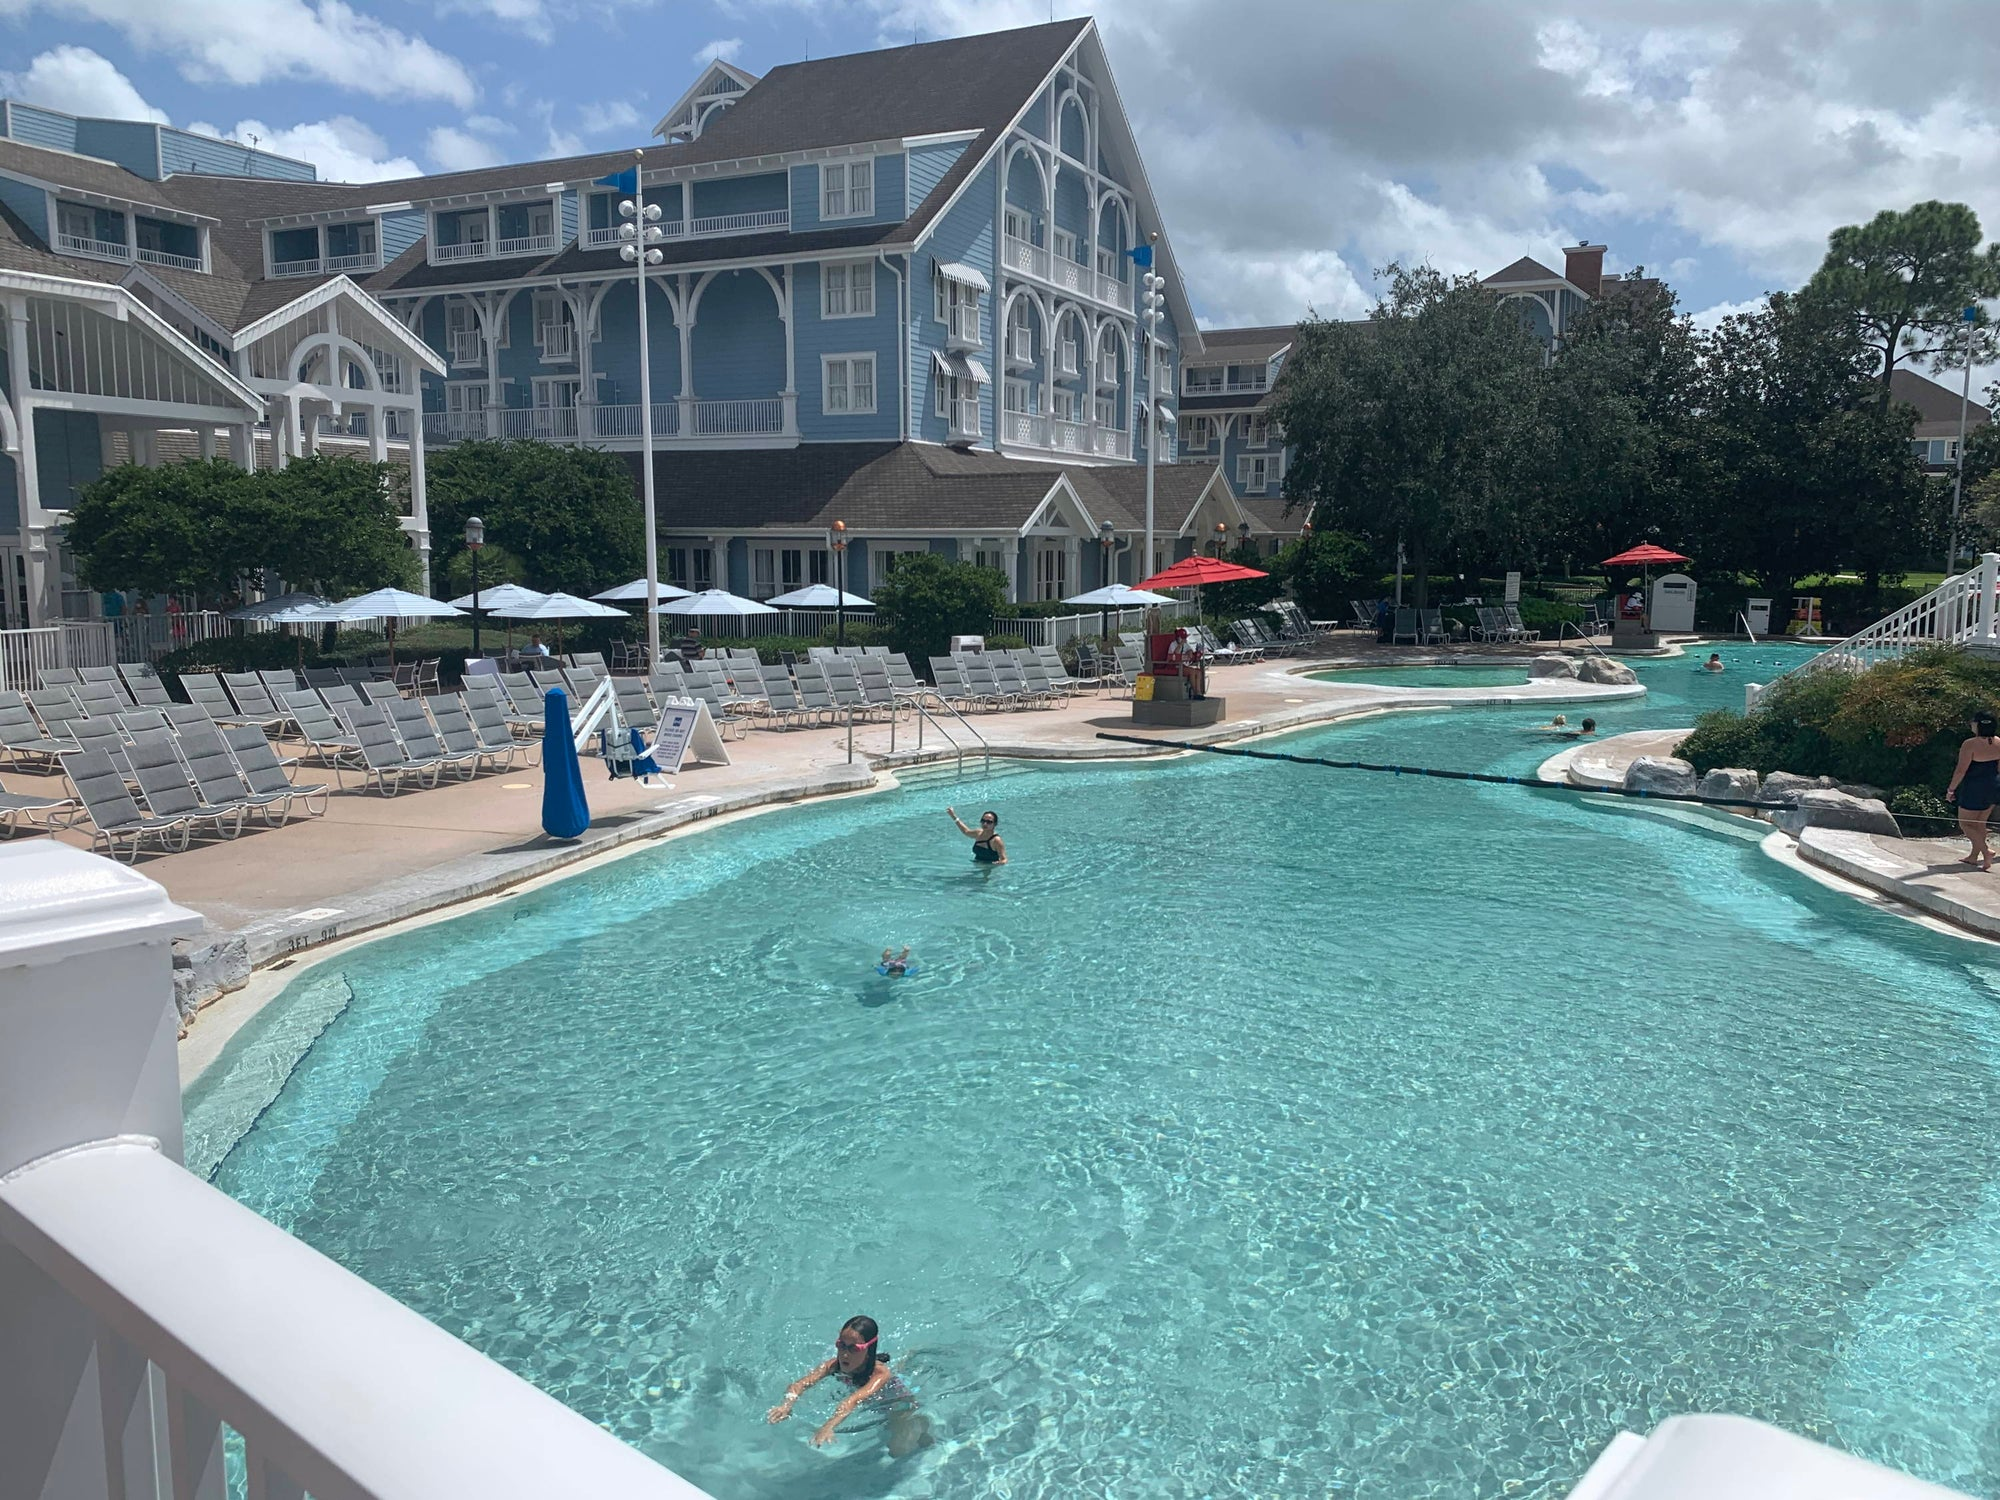 Stormalong Bay Pool Reopens at Disney's Yacht Club Resort